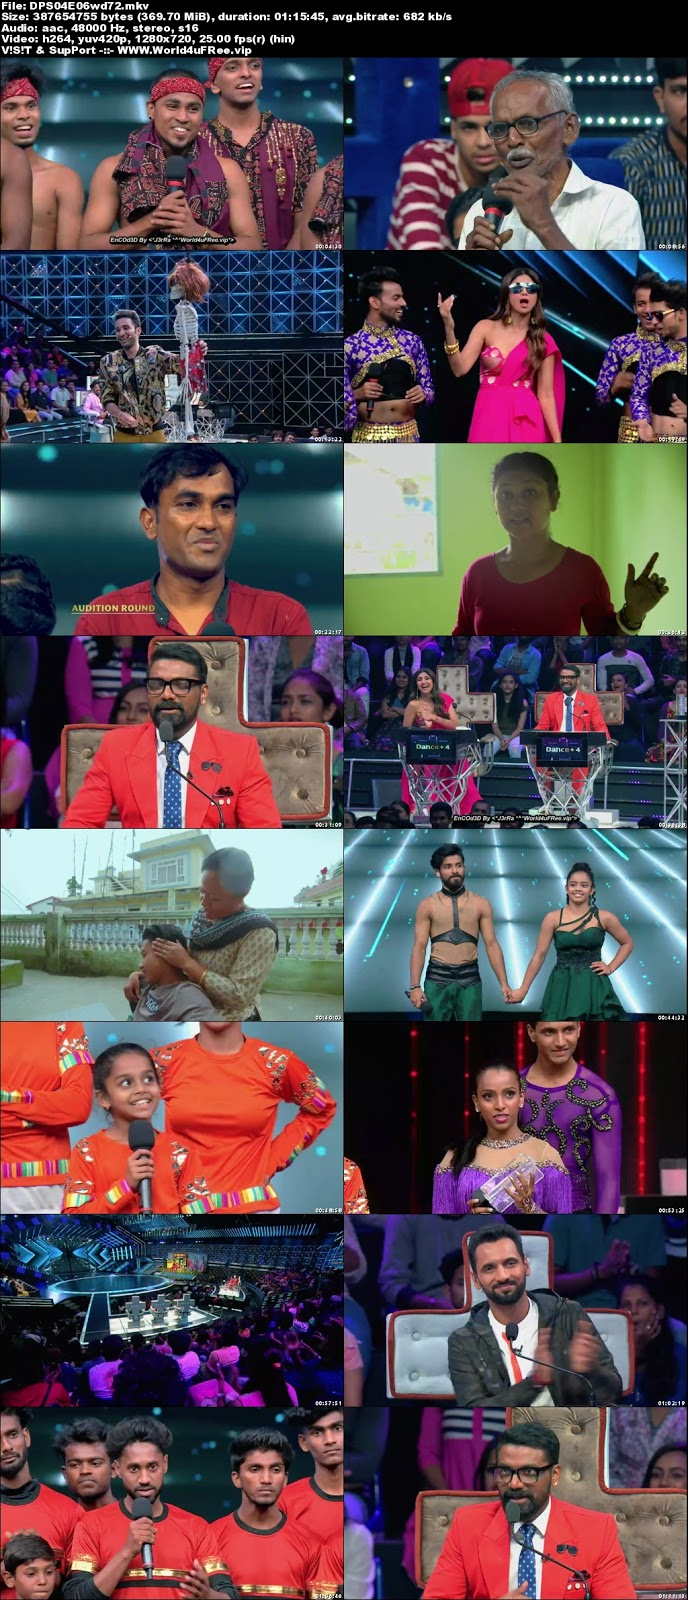 Dance Plus S4 21 October 2018 720p HDTV 350mb x264 world4ufree.vip tv show Dance Plus 4 2018 hindi tv show Dance Plus 4 2018 Season 4 Star Plus tv show compressed small size free download or watch online at world4ufree.vip